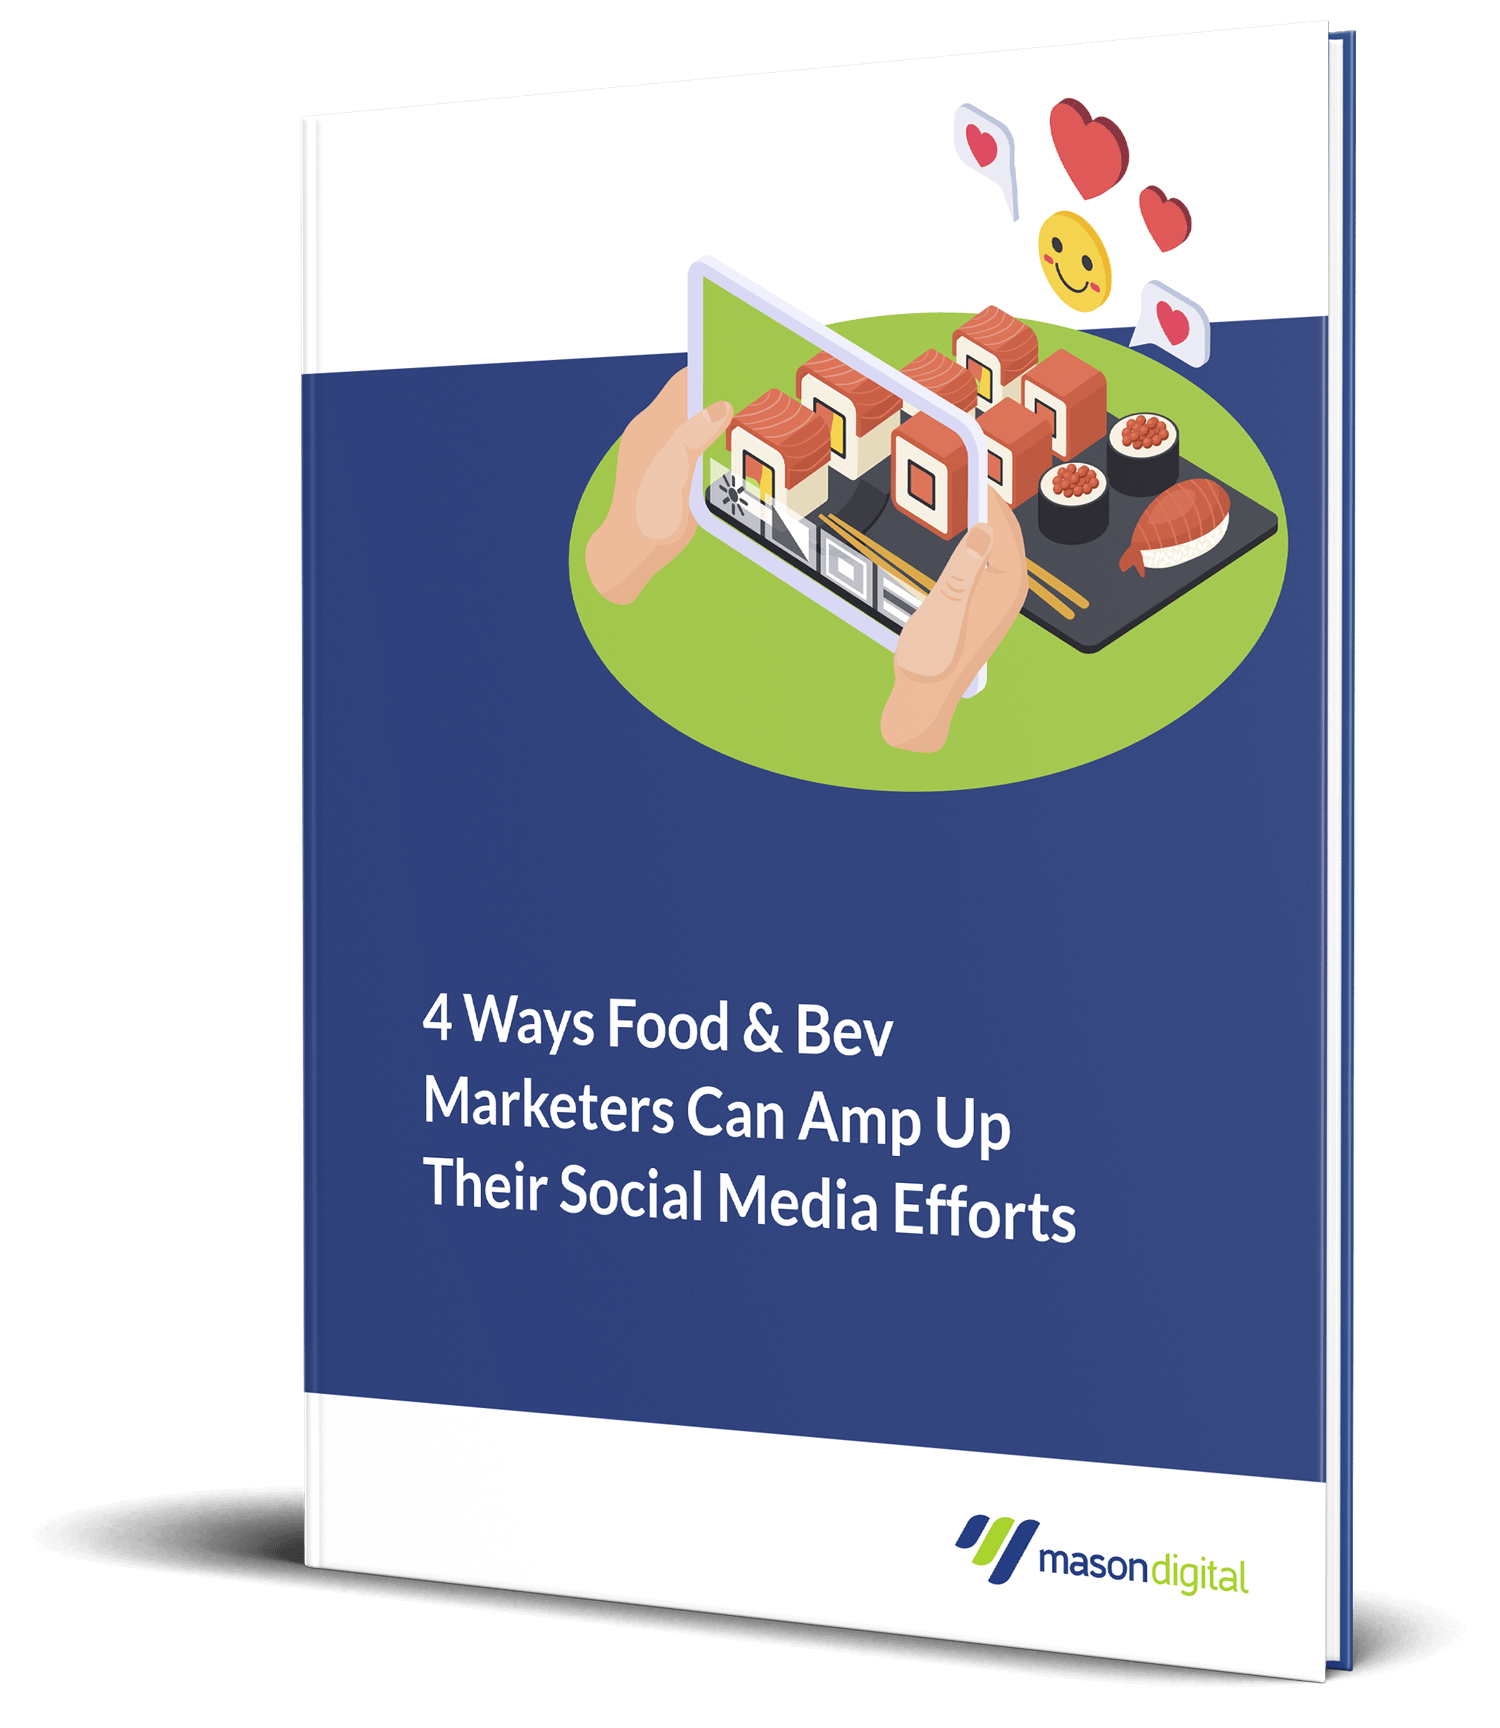 Feature Image - 4 Ways Food & Beverage Marketers Can Amp Up Their Social Media Efforts